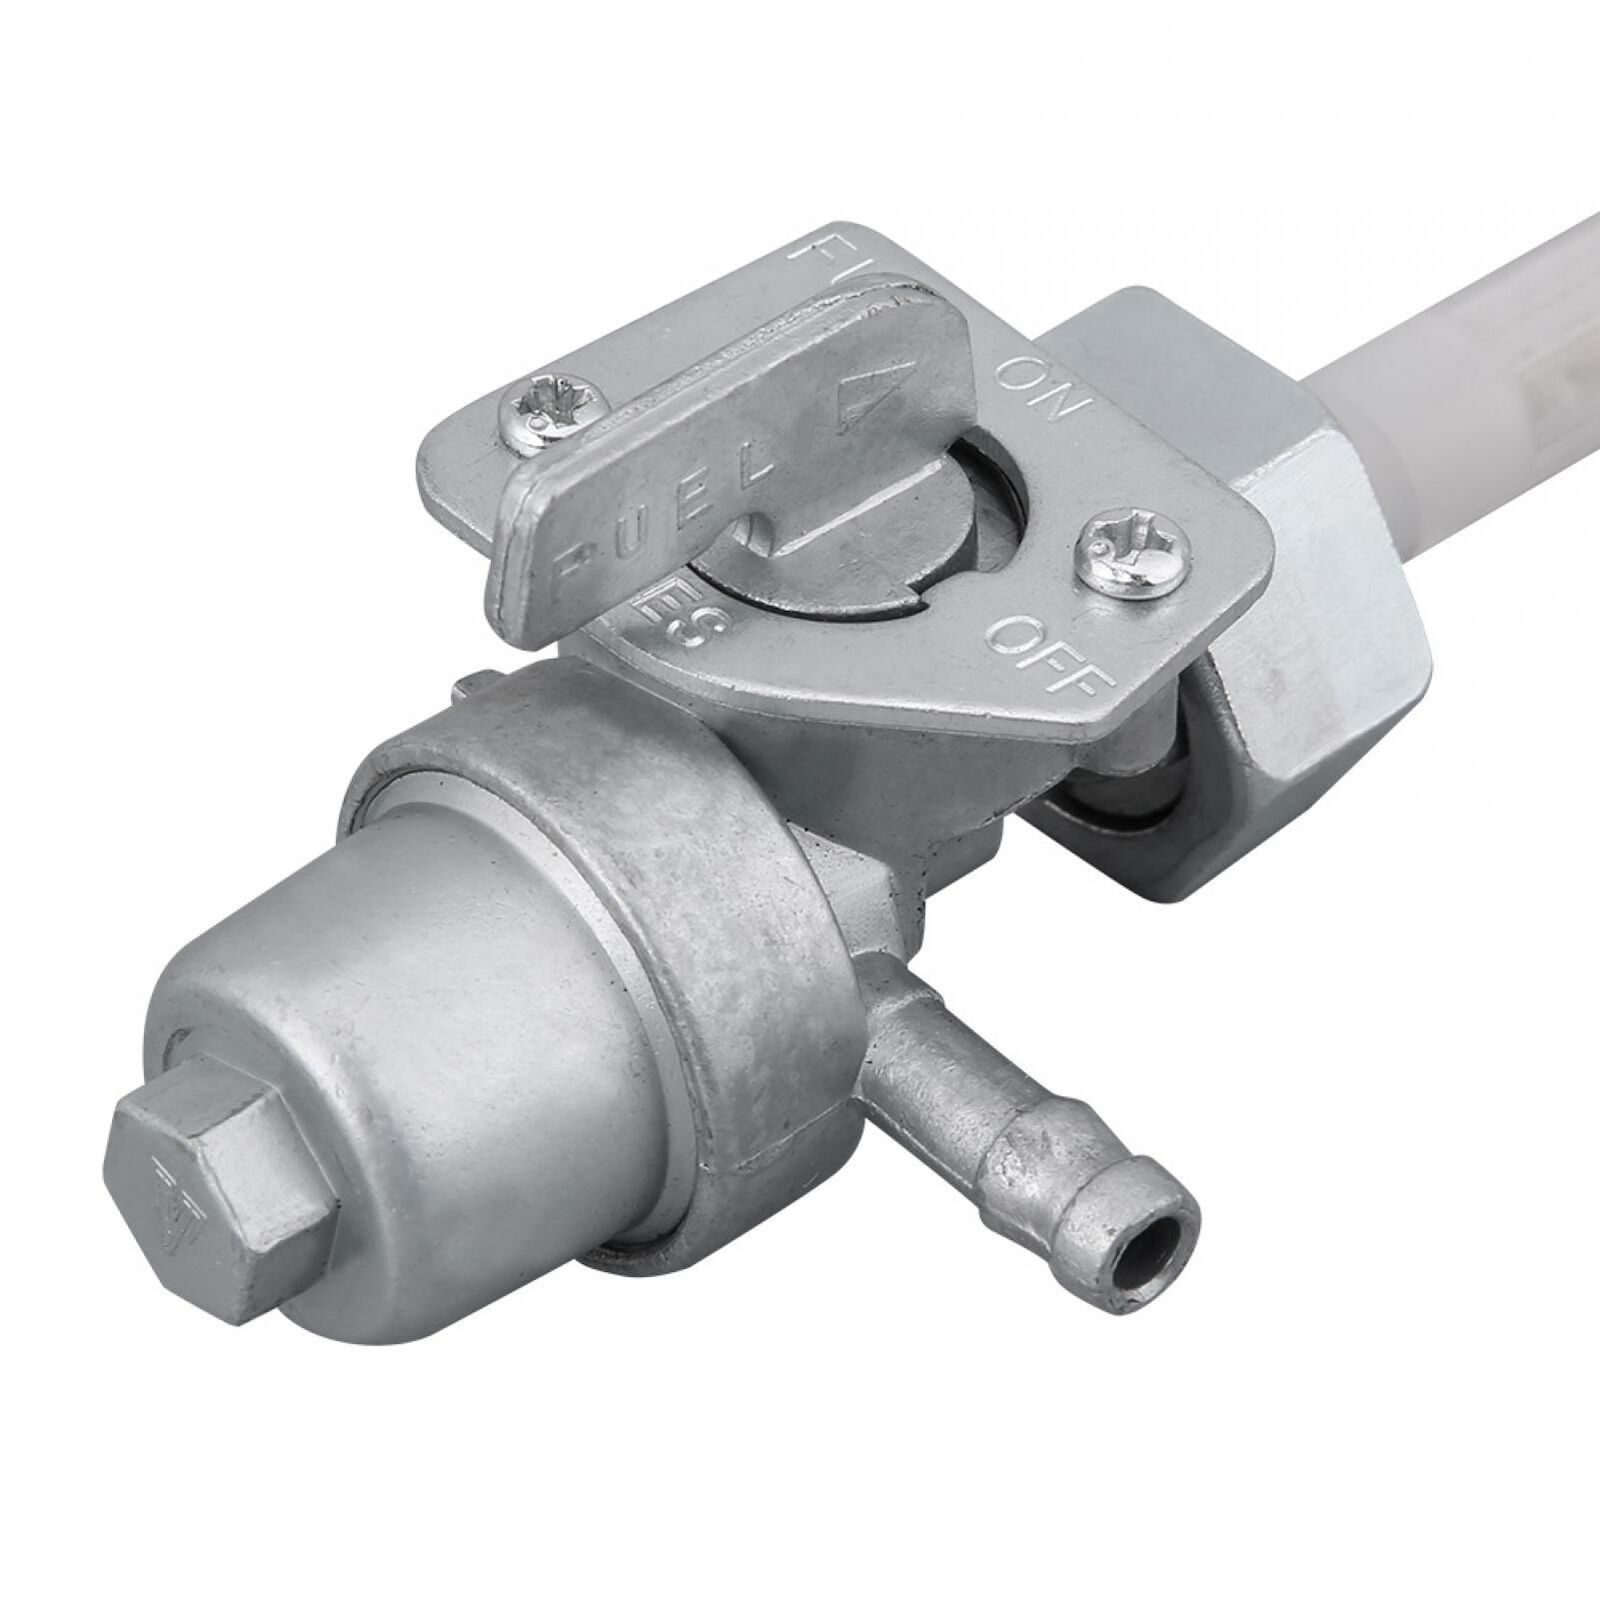 Fuel Switch Valve Practical Made Of Good Quality For Home